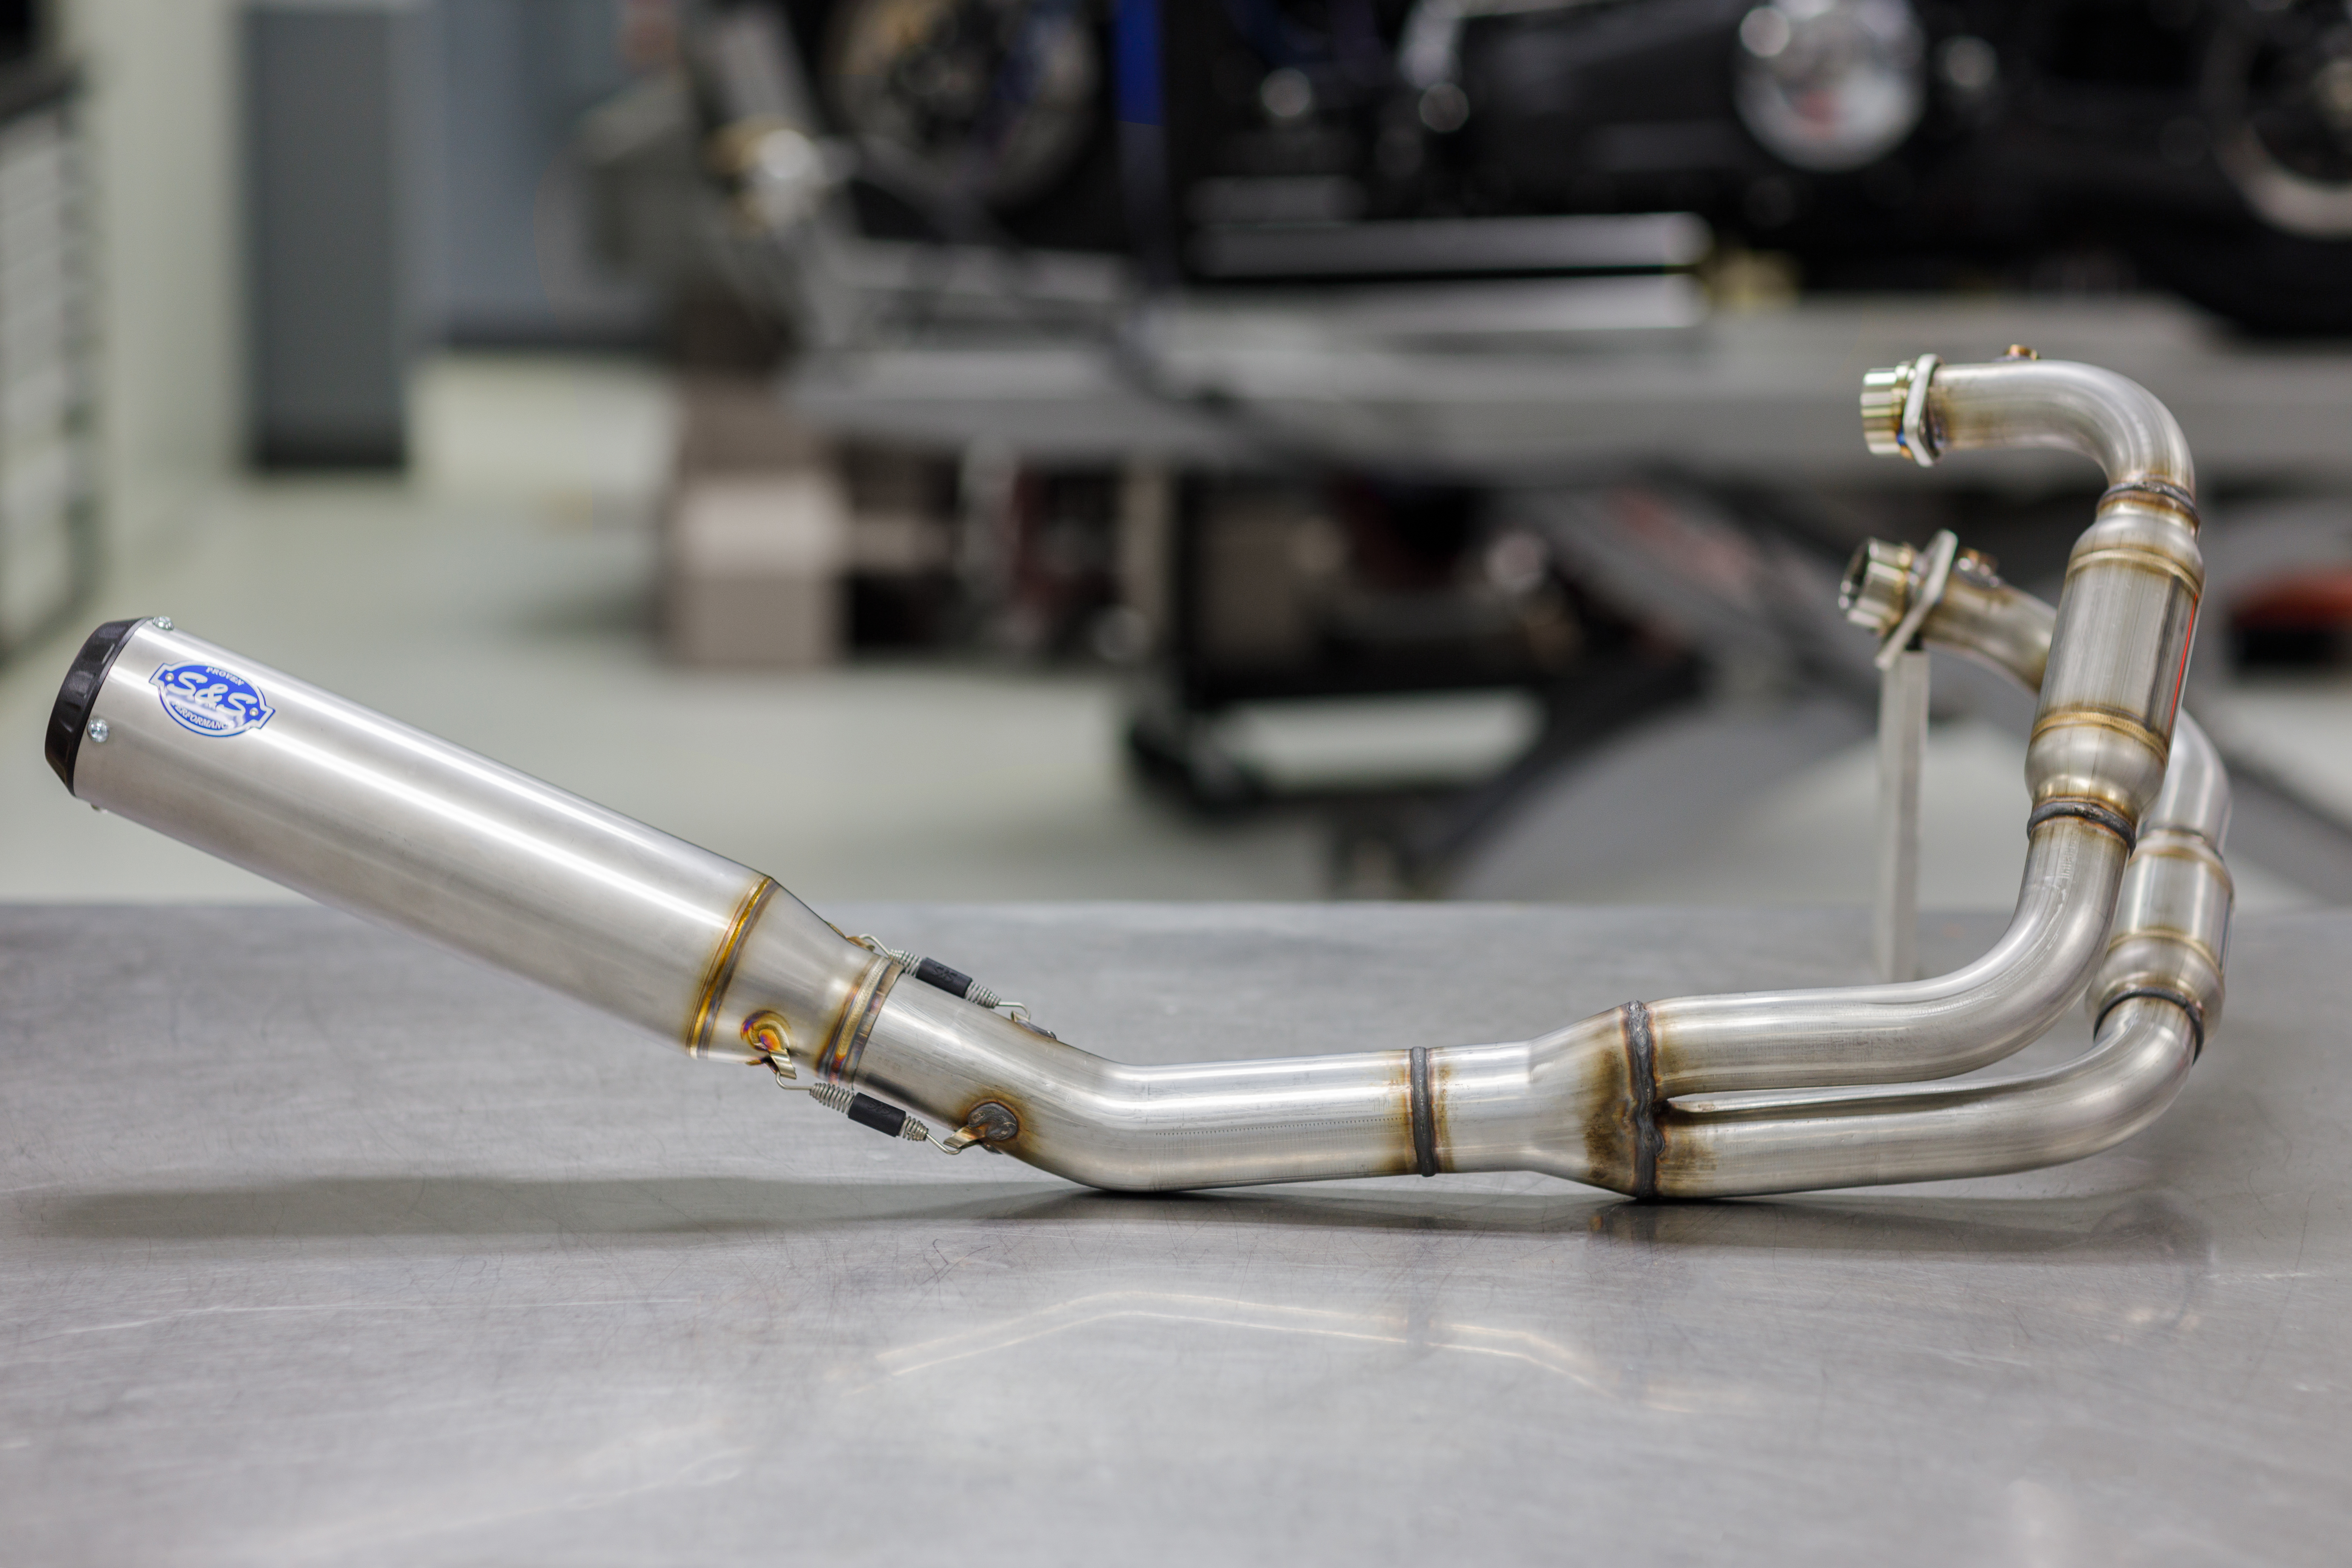 NEW STUFF ALERT - Qualifier 2:1 Stainless Exhaust for Royal Enfield 650 Twin